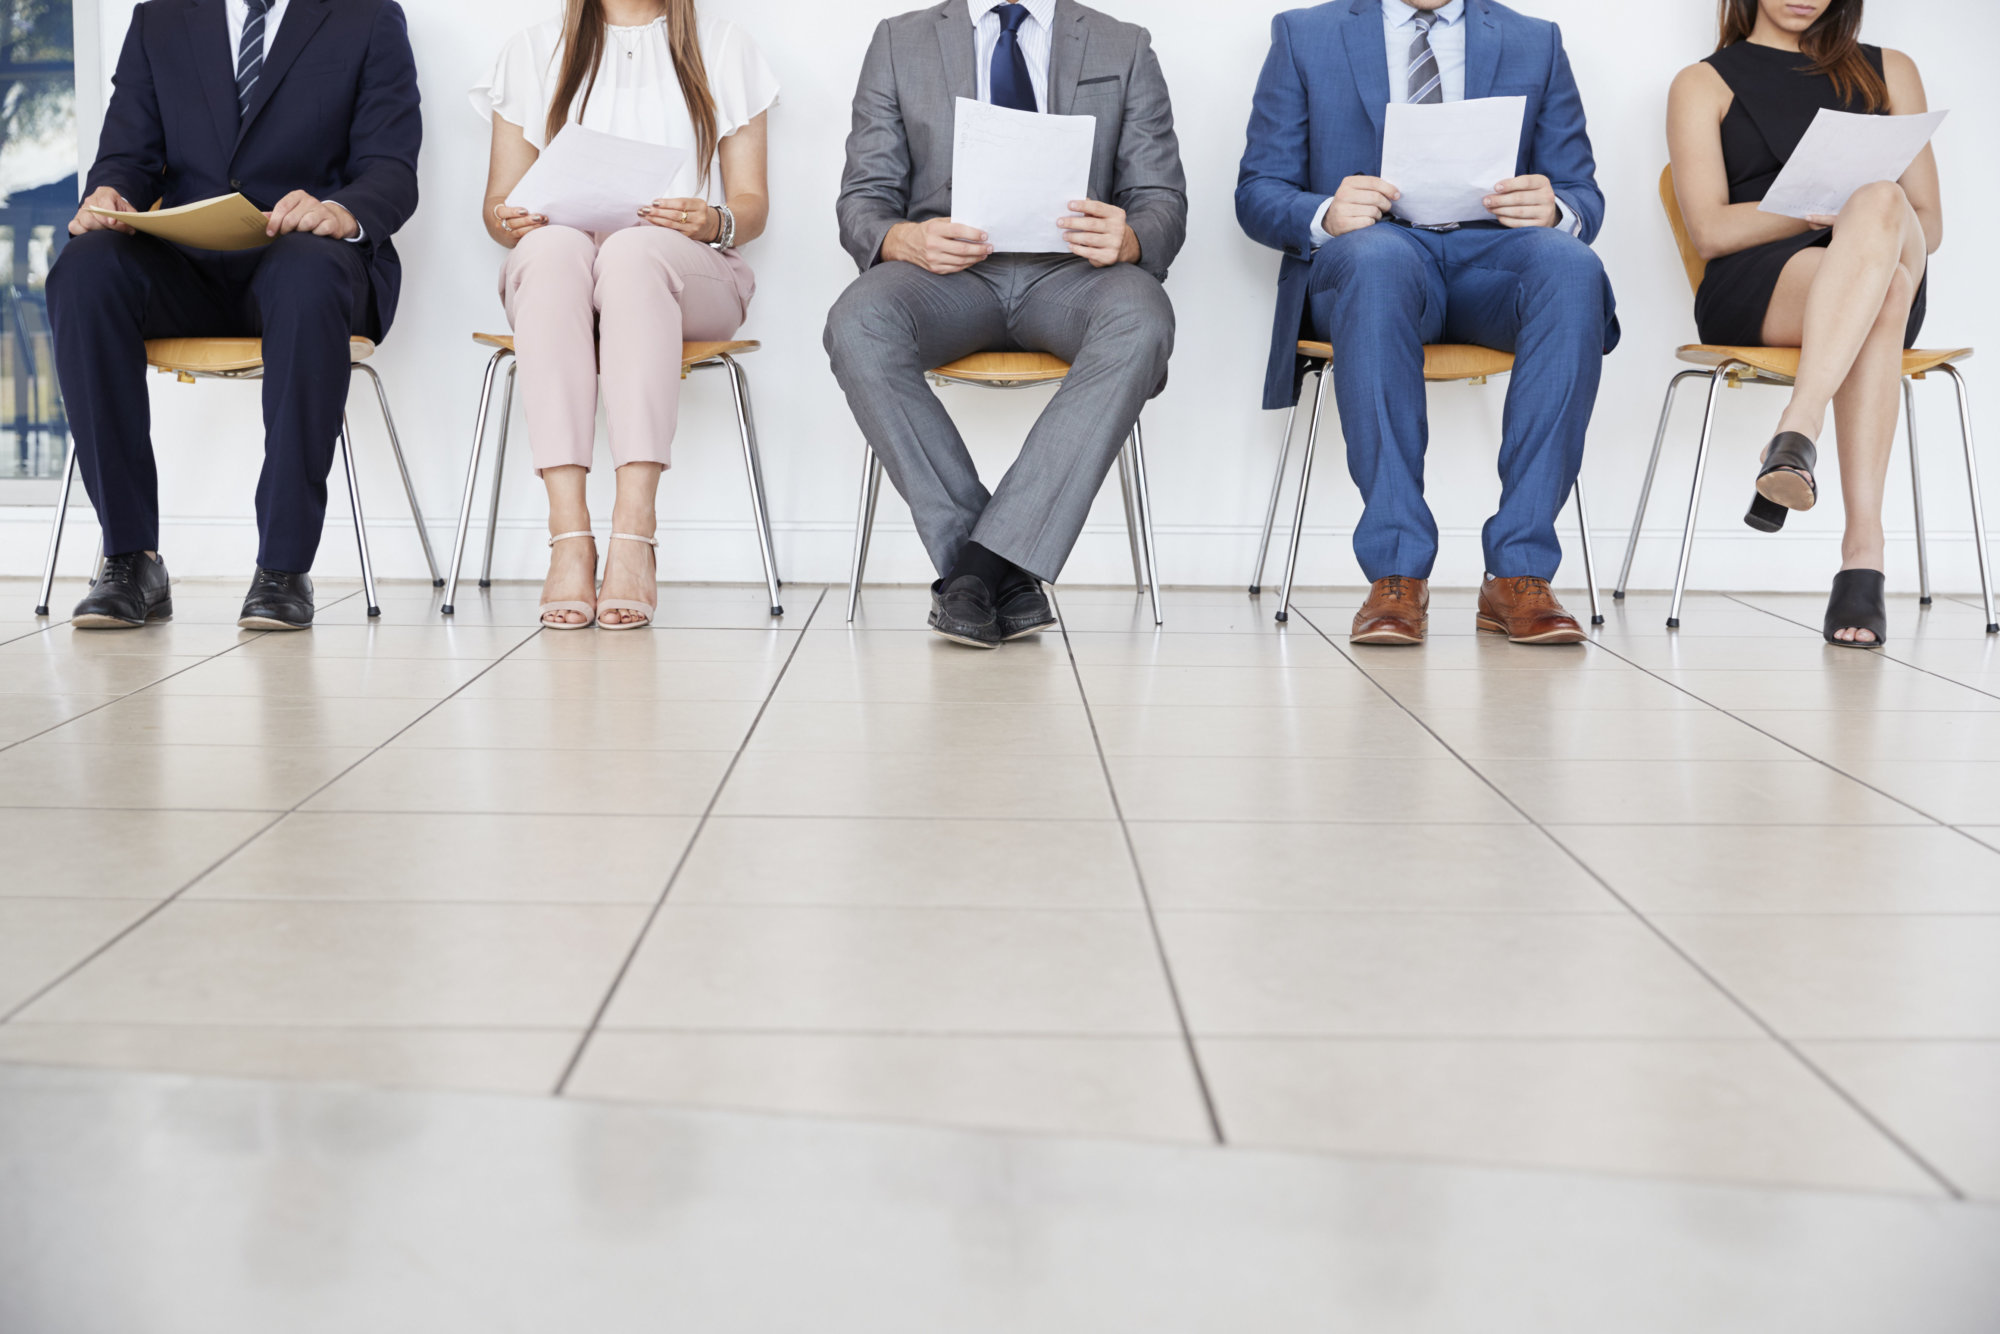 Job candidates want tech-driven, fast, easy application process